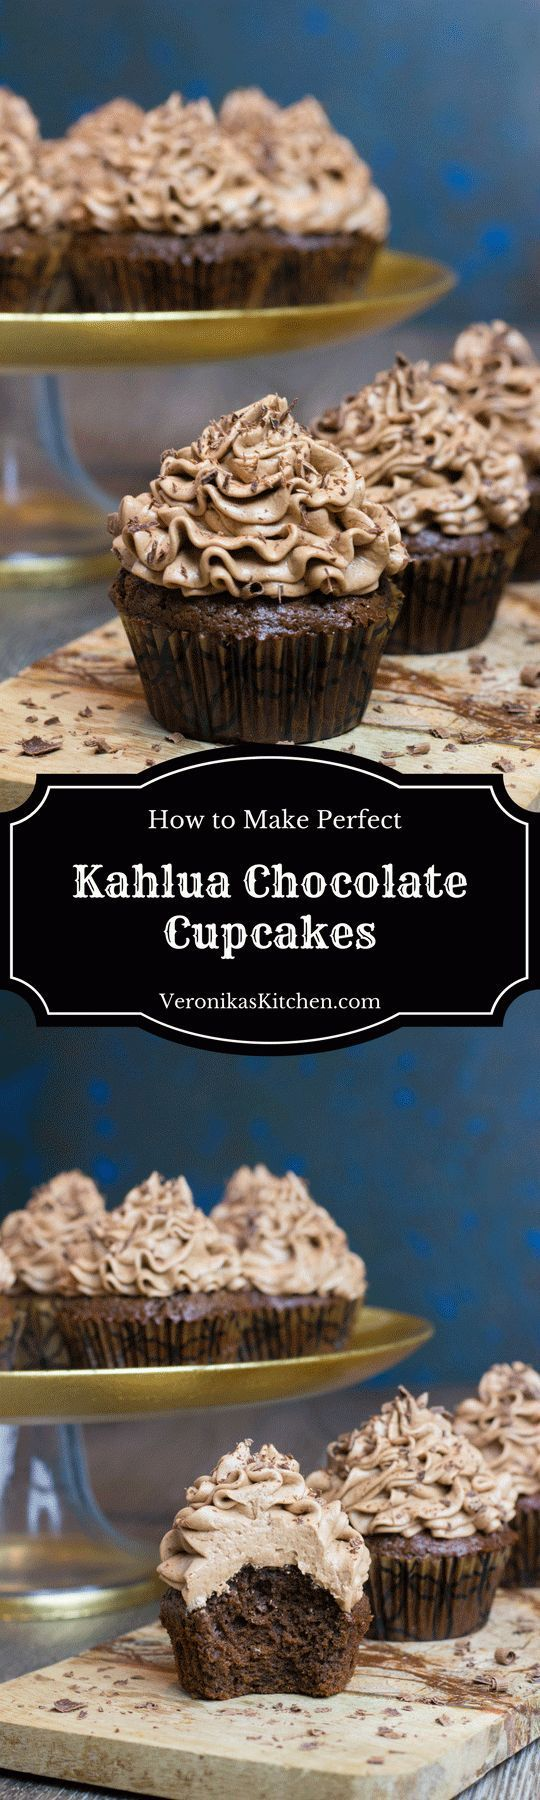 Kahlua Chocolate Cupcakes are a perfect dessert idea for chocolate and coffee lovers, featuring rich and decadent chocolate and coffee flavor with a touch of Kahlua. (#cupcakesideas, #chocolatecupcakes, #kahluacupcakes, #cupcakerecipeideas, #cupcakeideas, #chocolatedesserts, #dessertswithchocolate, #holidaydessertideas, #Christmasdesserts, #Christmasdessertideas)